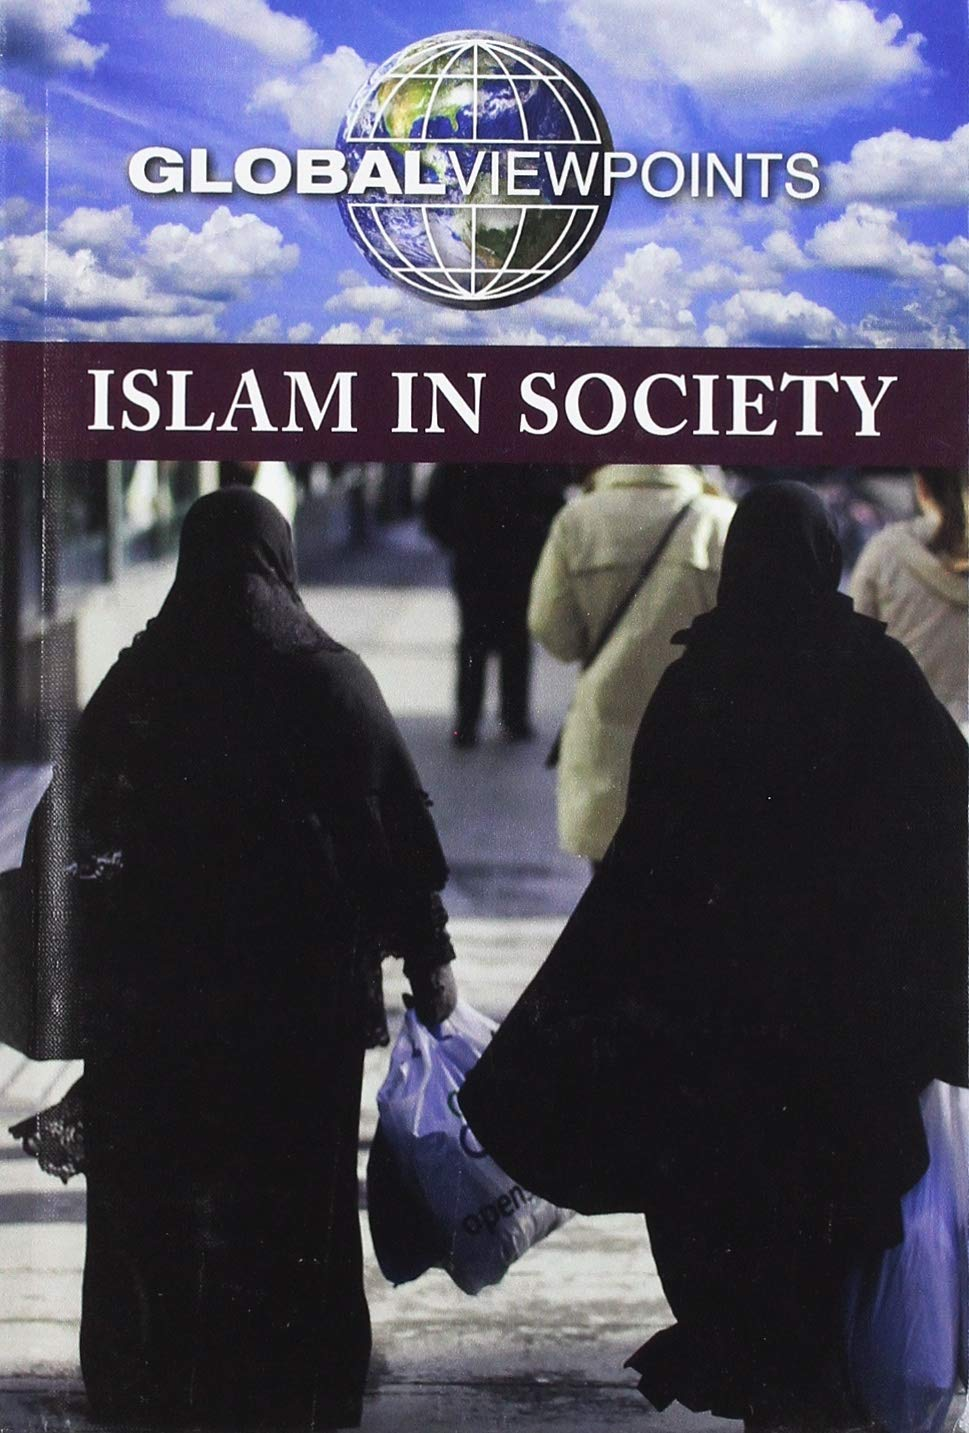 Islam in Society (Global Viewpoints) by Greenhaven Publishing